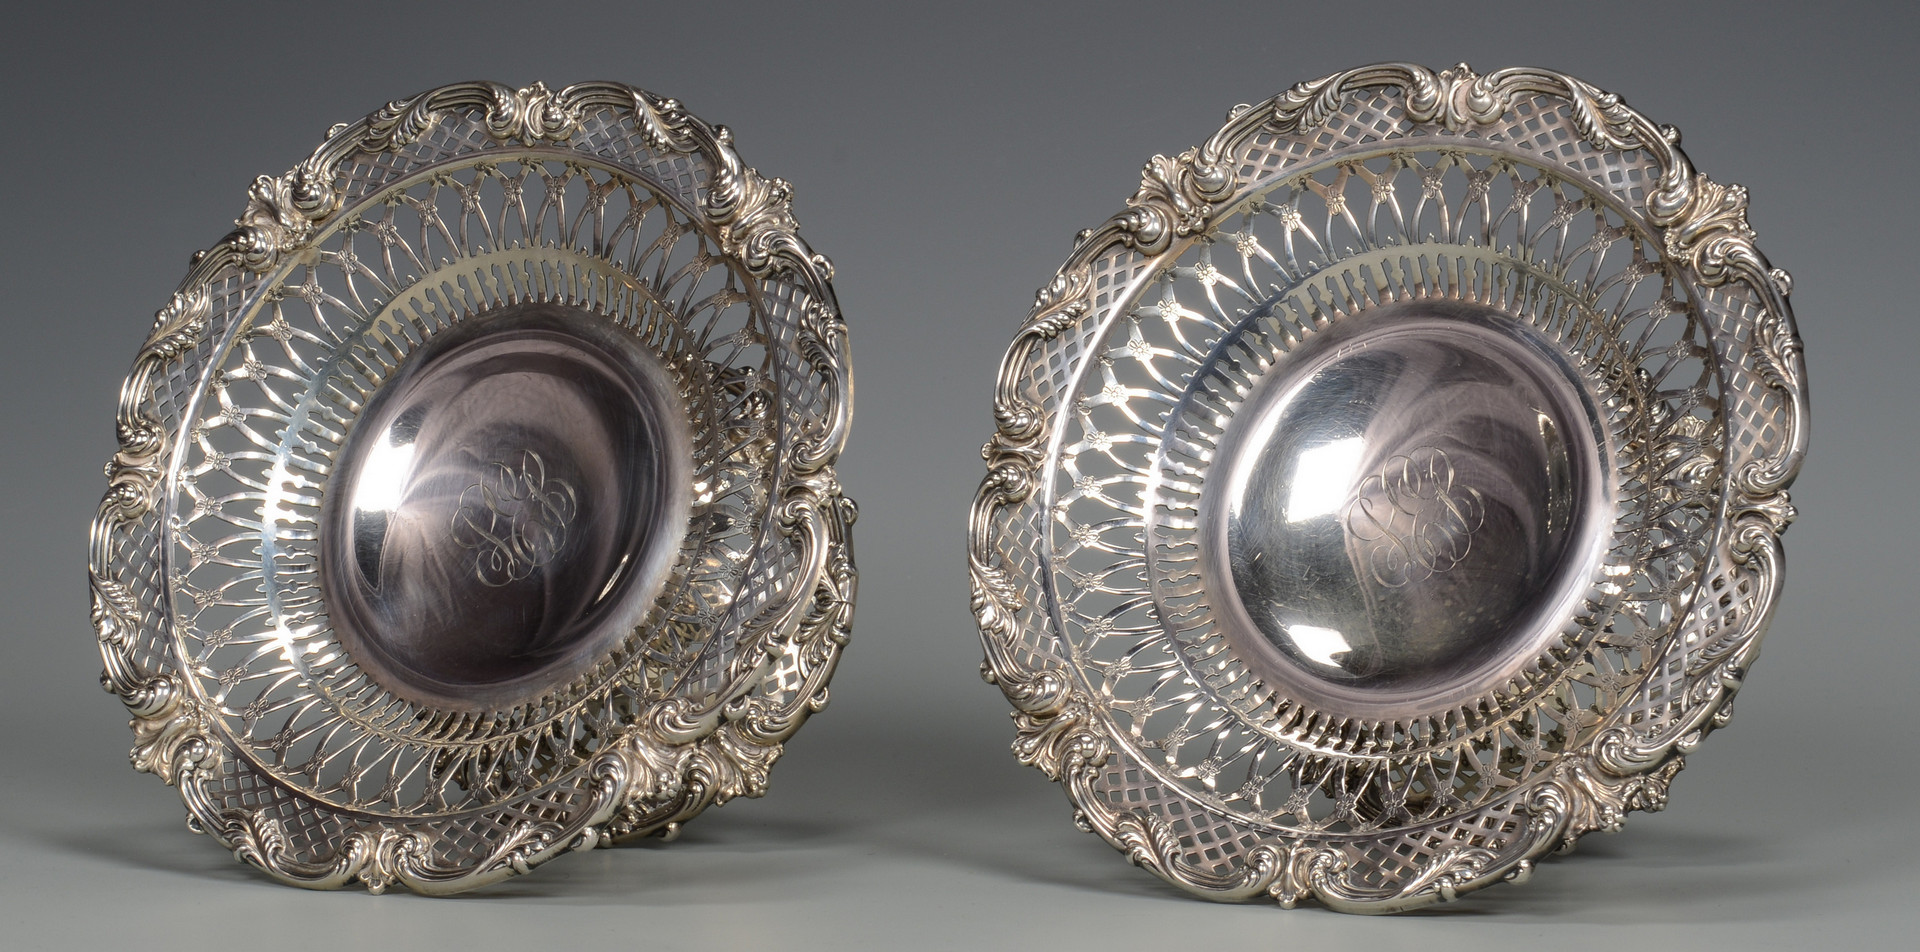 Lot 608: 2 Redlich Sterling Compotes